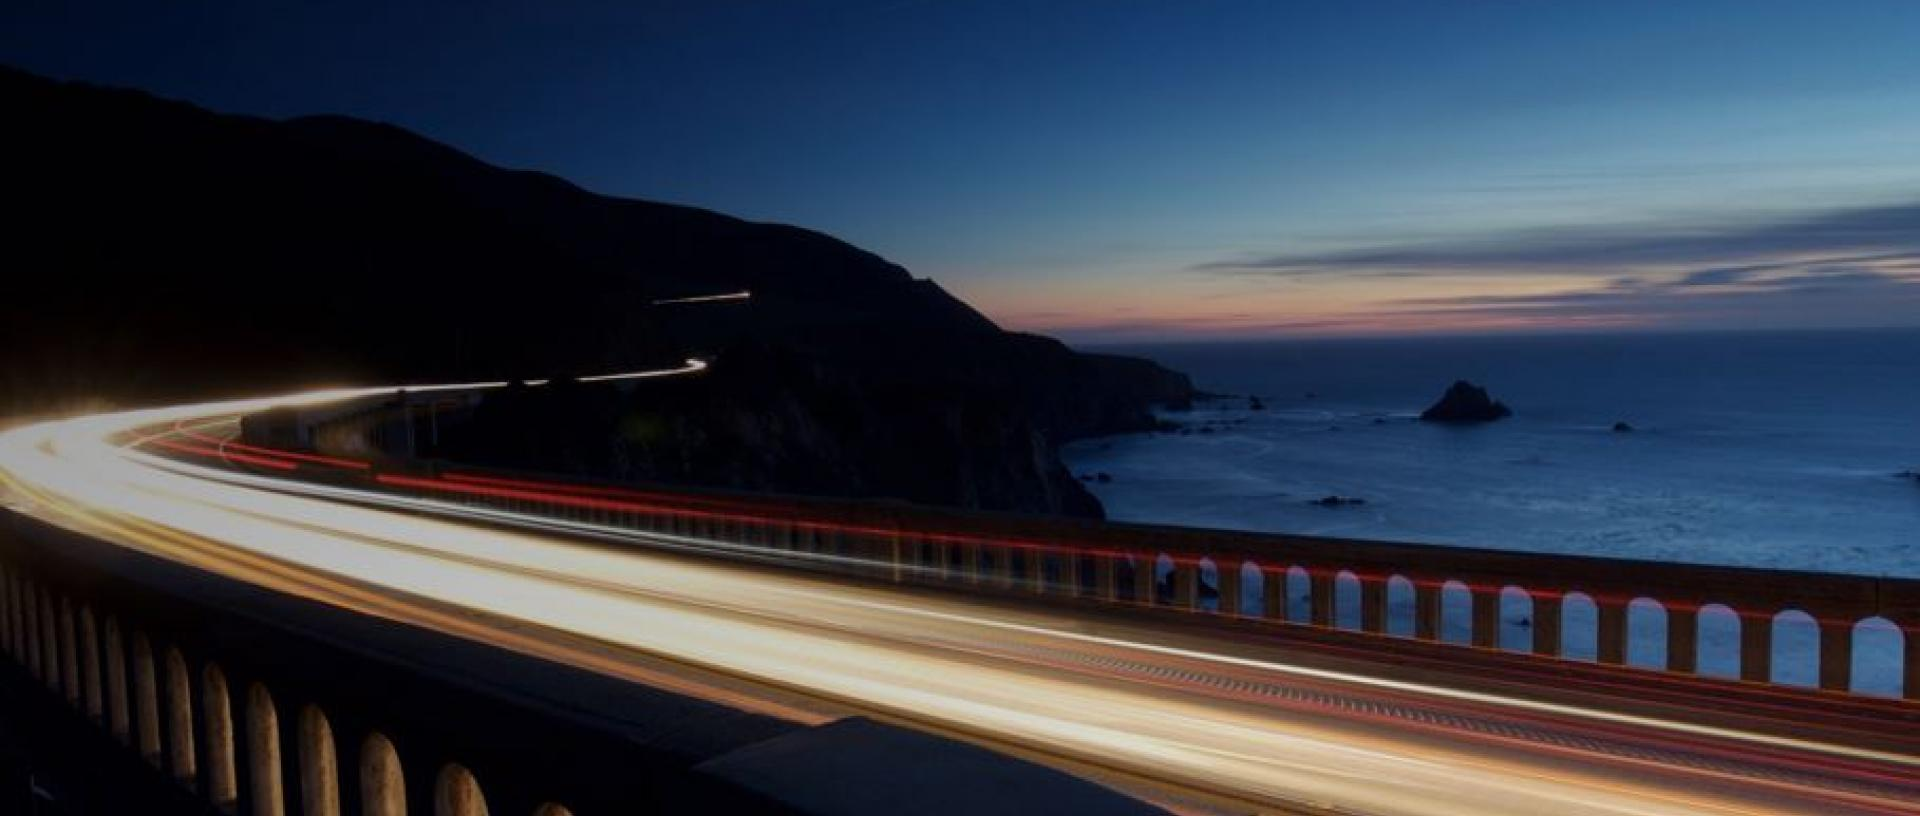 The speed of light on a road by the ocean